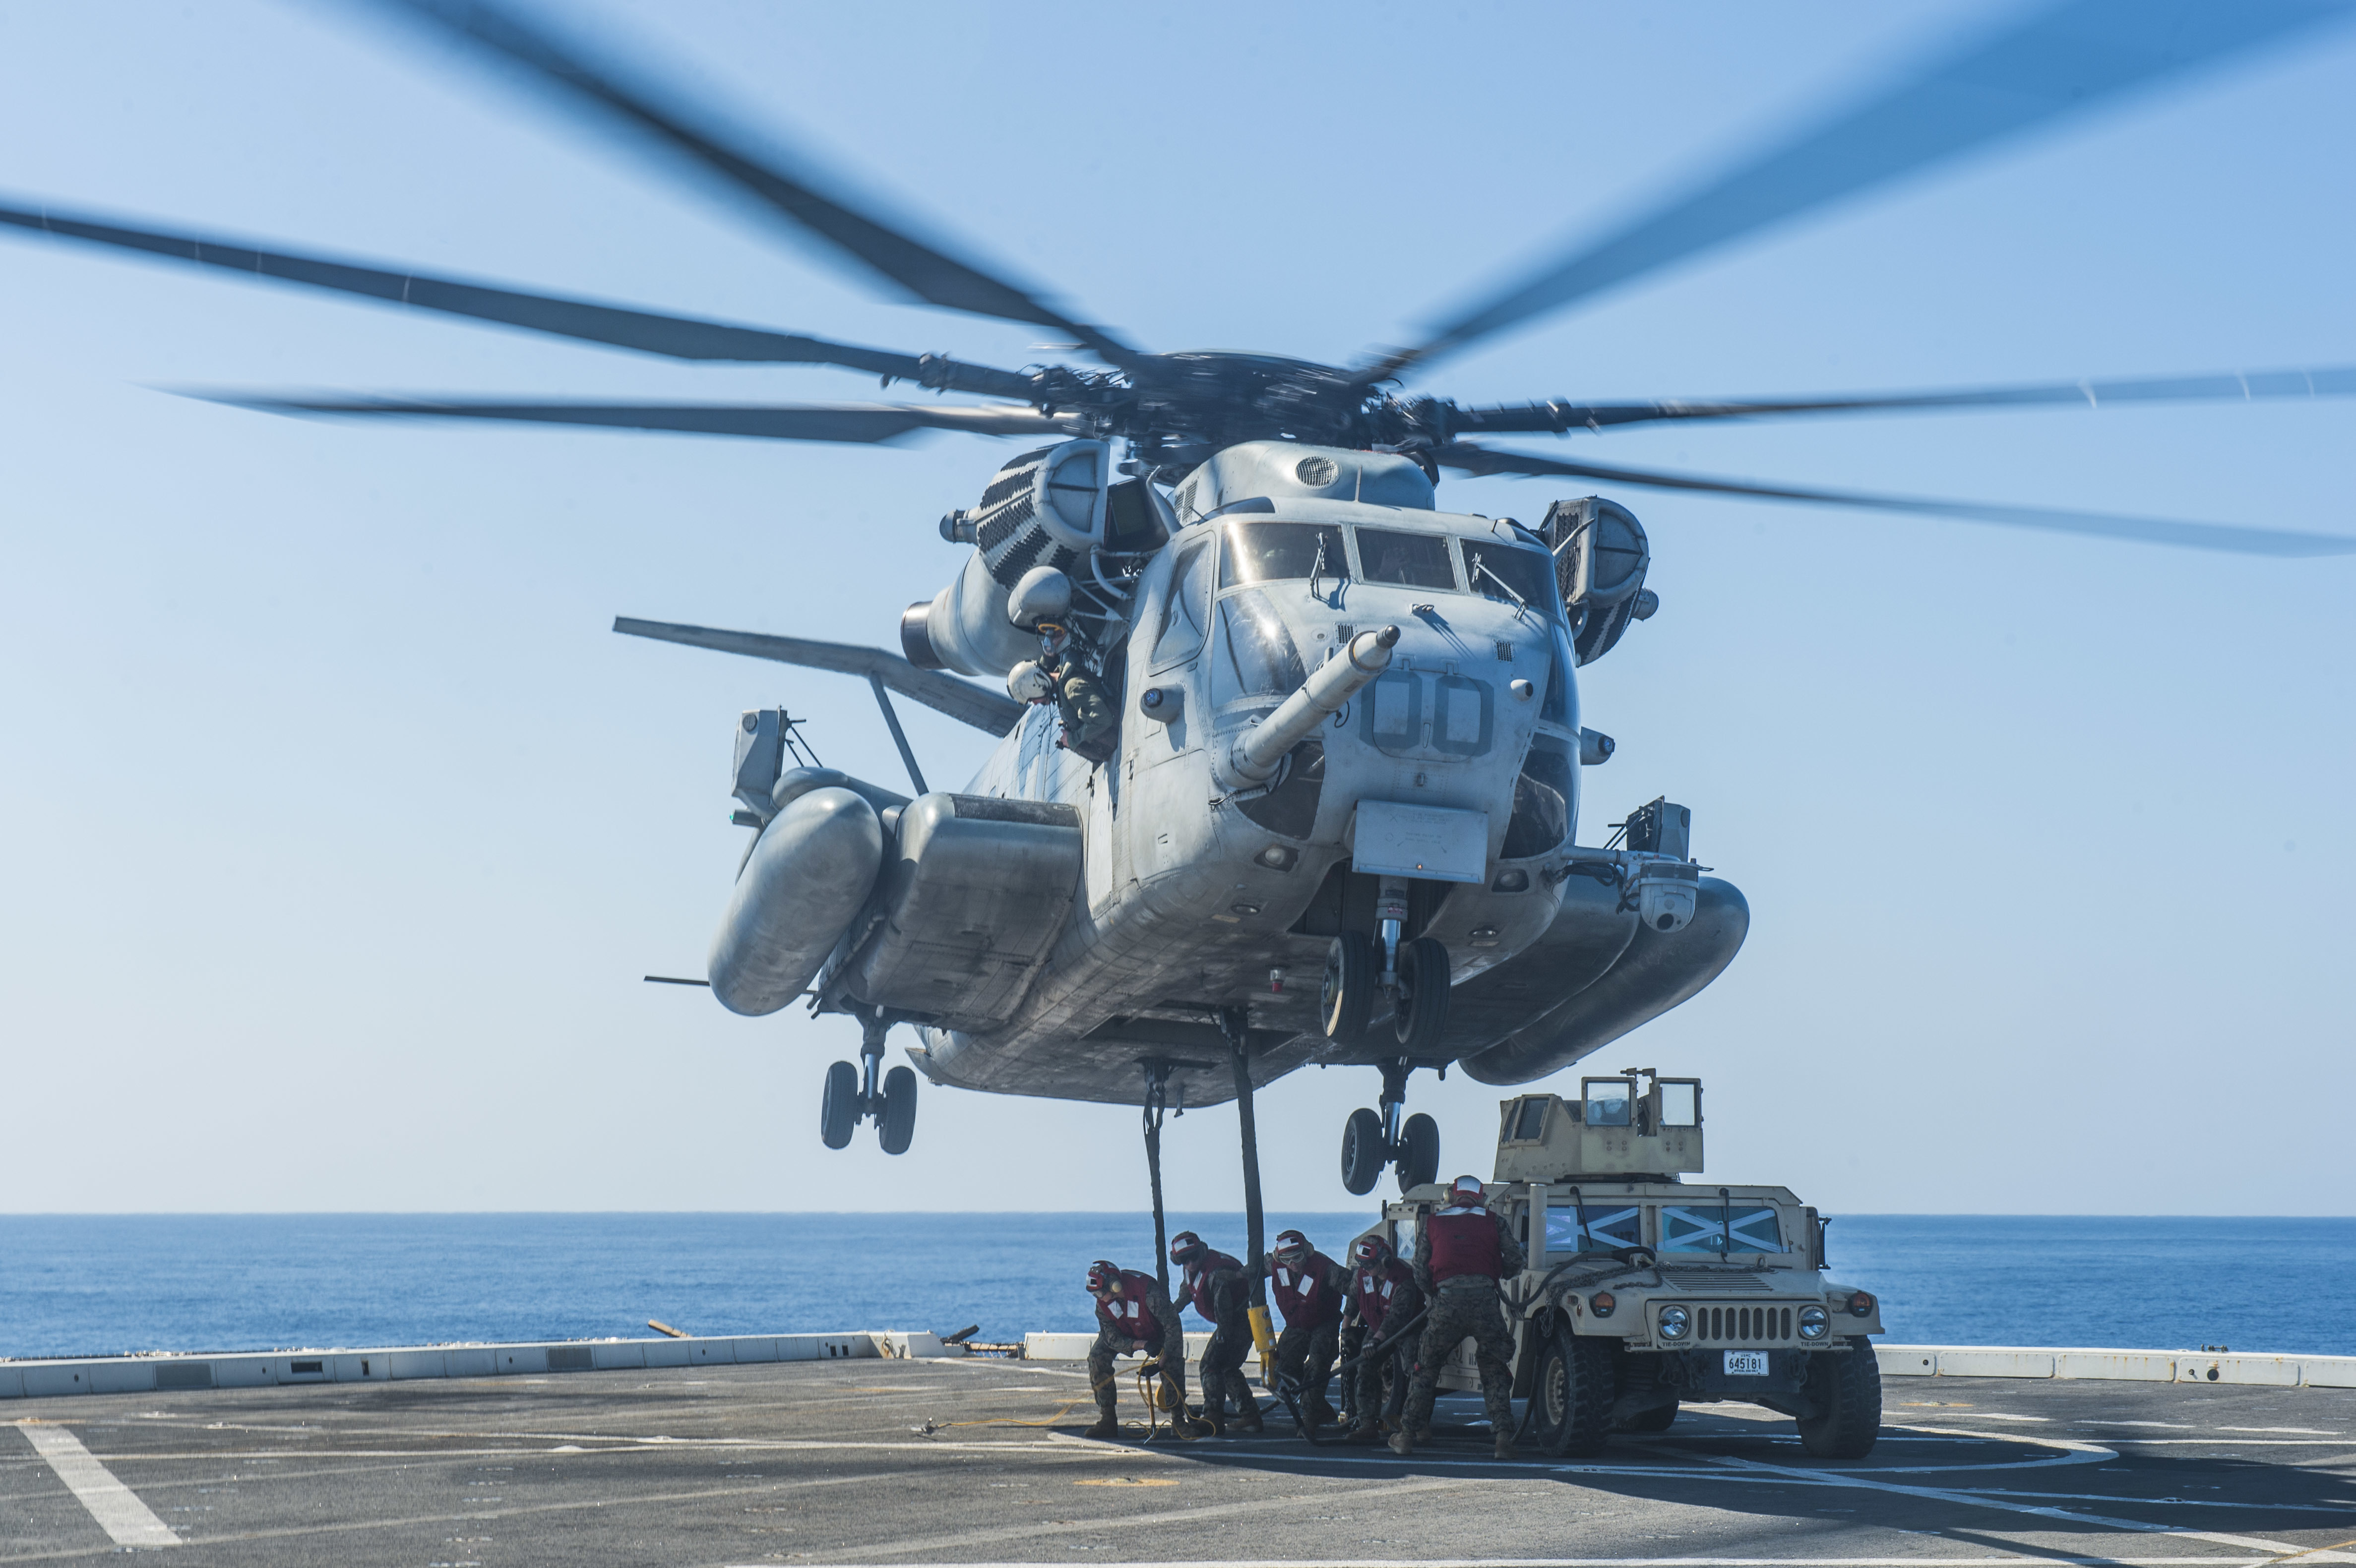 161031-N-XM324-095 WATERS OUTSIDE OKINAWA (Oct. 31, 2016) Marines, assigned to 3rd Battalion, 3rd Marine Regiment, attach a Humvee to a CH-53E Super Stallion helicopter, assigned to the 1st Marine Aircraft Wing, from the flight deck of the amphibious transport dock ship USS Green Bay (LPD 20) during Blue Chromite. Blue Chromite is a U.S.-only exercise, which strengthens the Navy-Marine Corps expeditionary, amphibious rapid-response capabilities based in Okinawa, Japan and the greater Indo-Asia-Pacific region. (U.S. Navy photo by Petty Officer 3rd Class Patrick Dionne/Released)